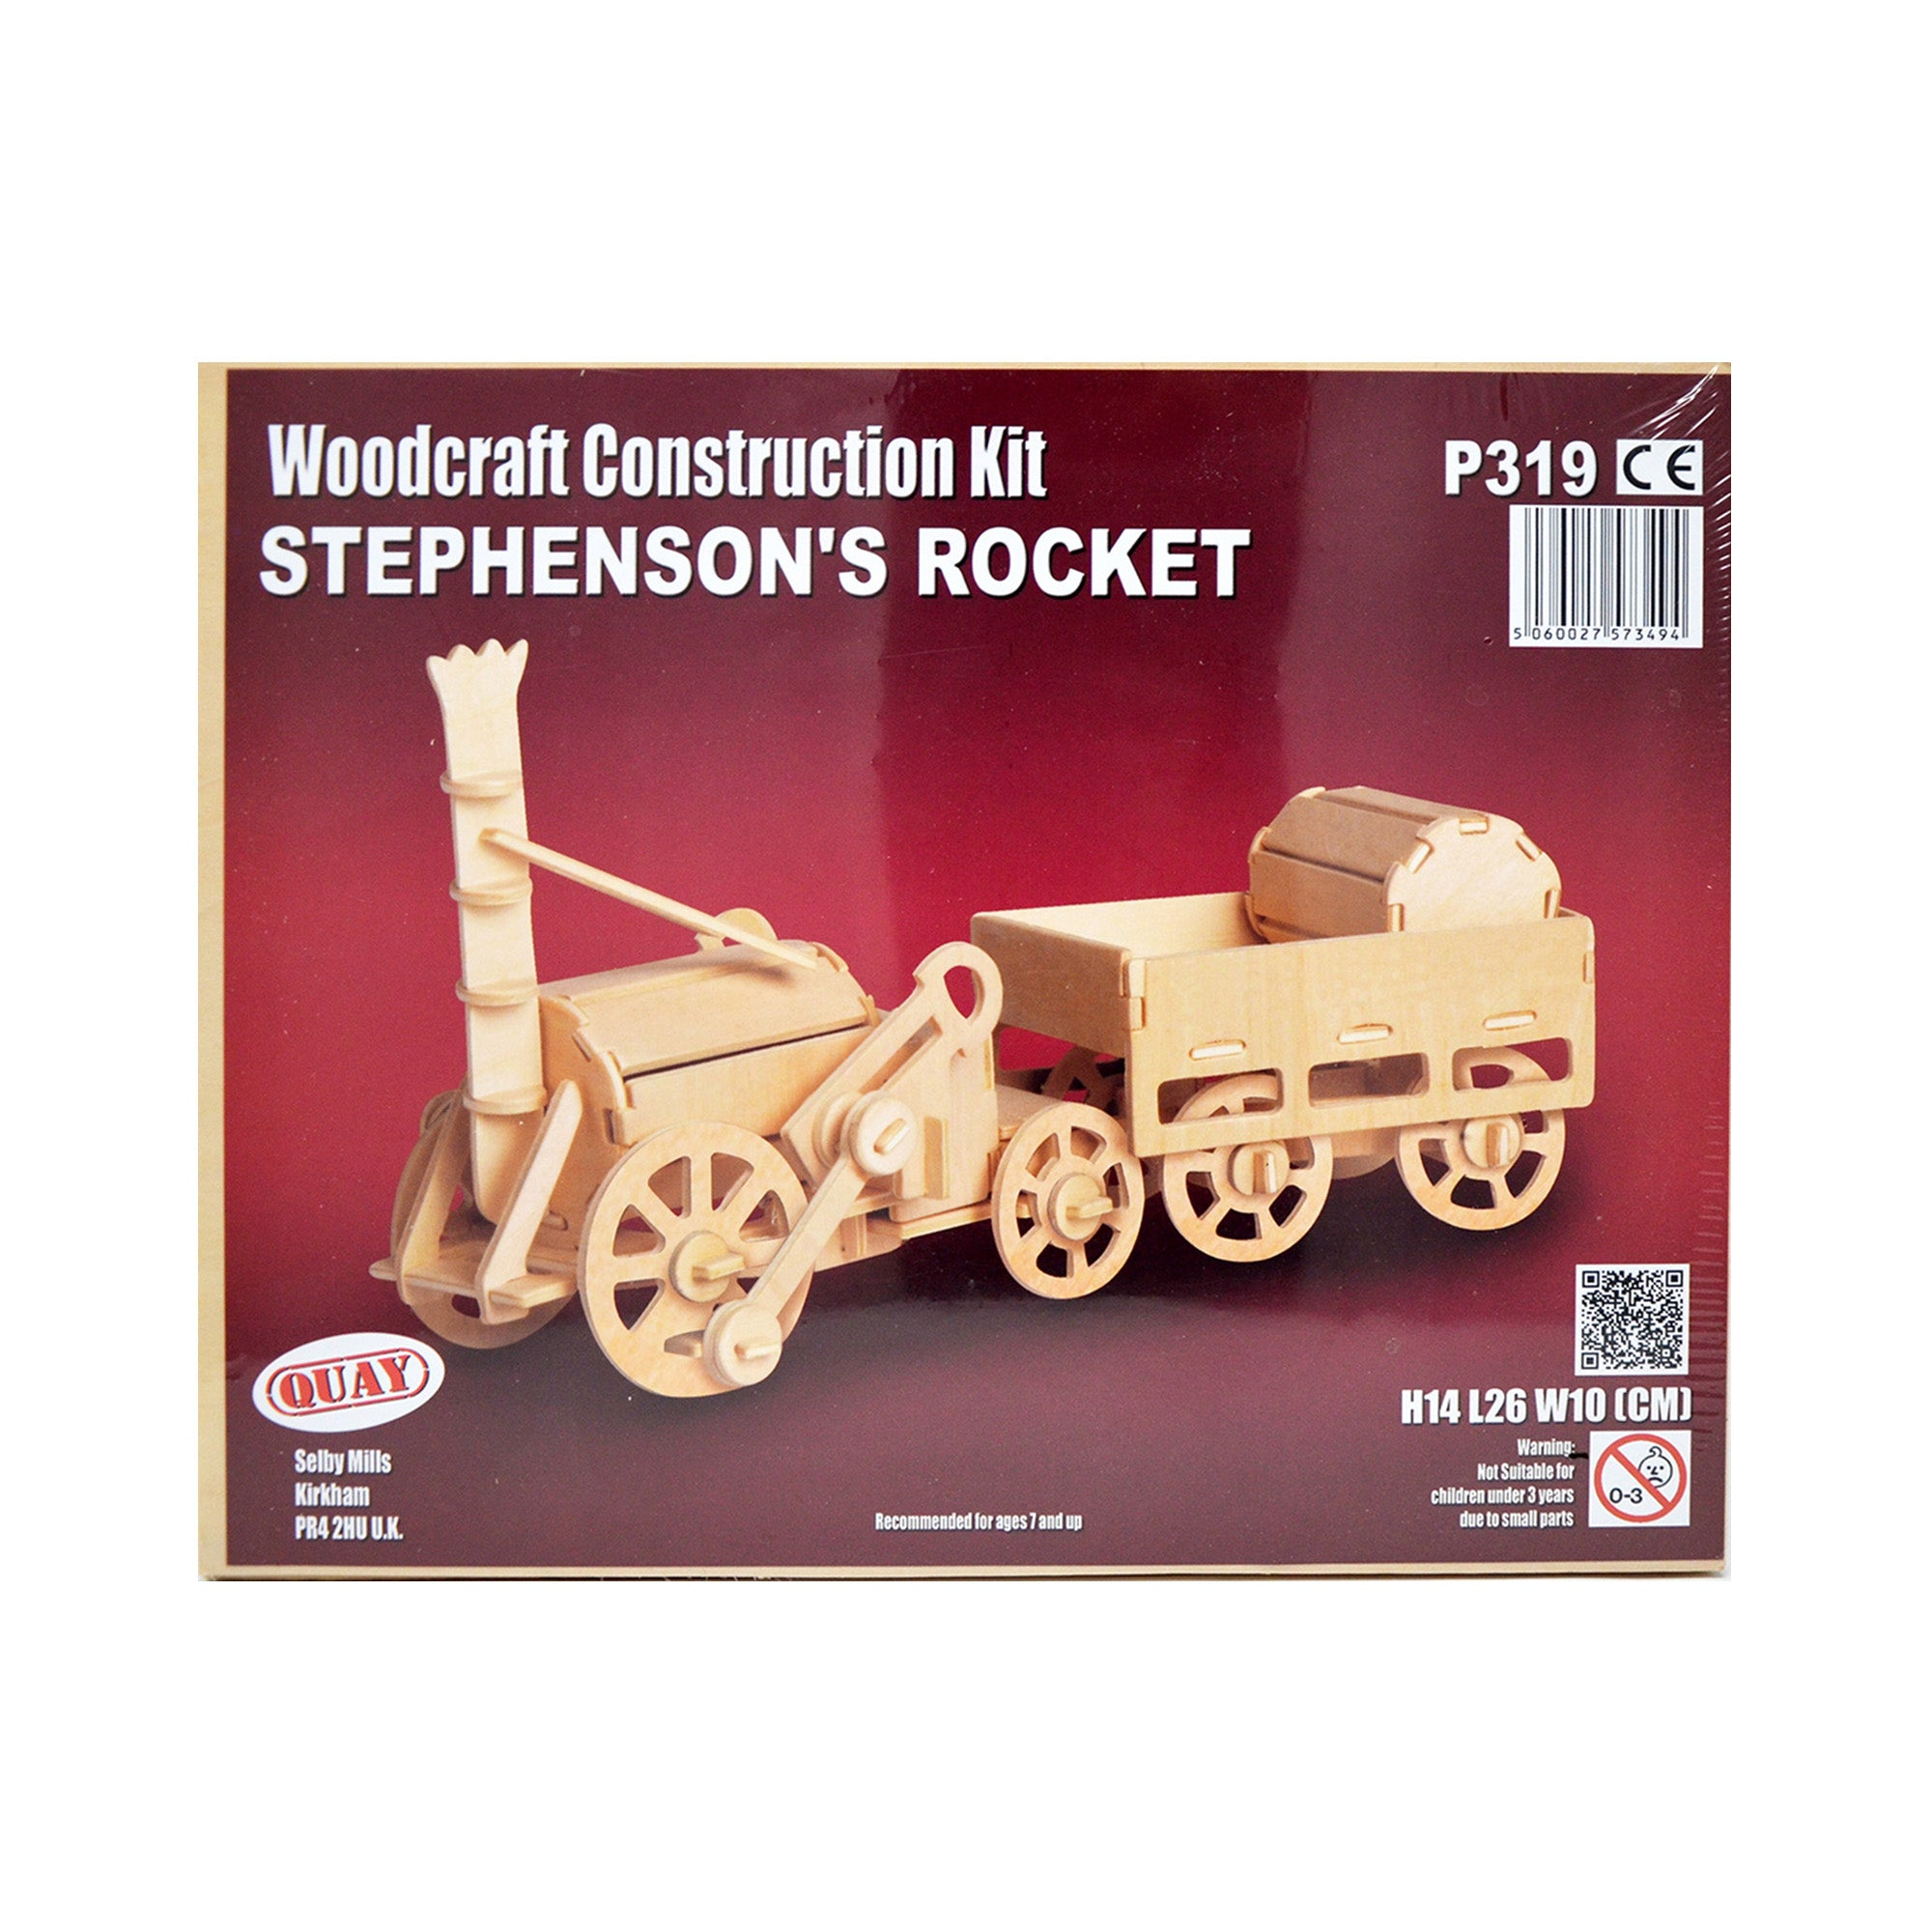 Puzzle tridimensionali in legno - Stephenson's Rocket